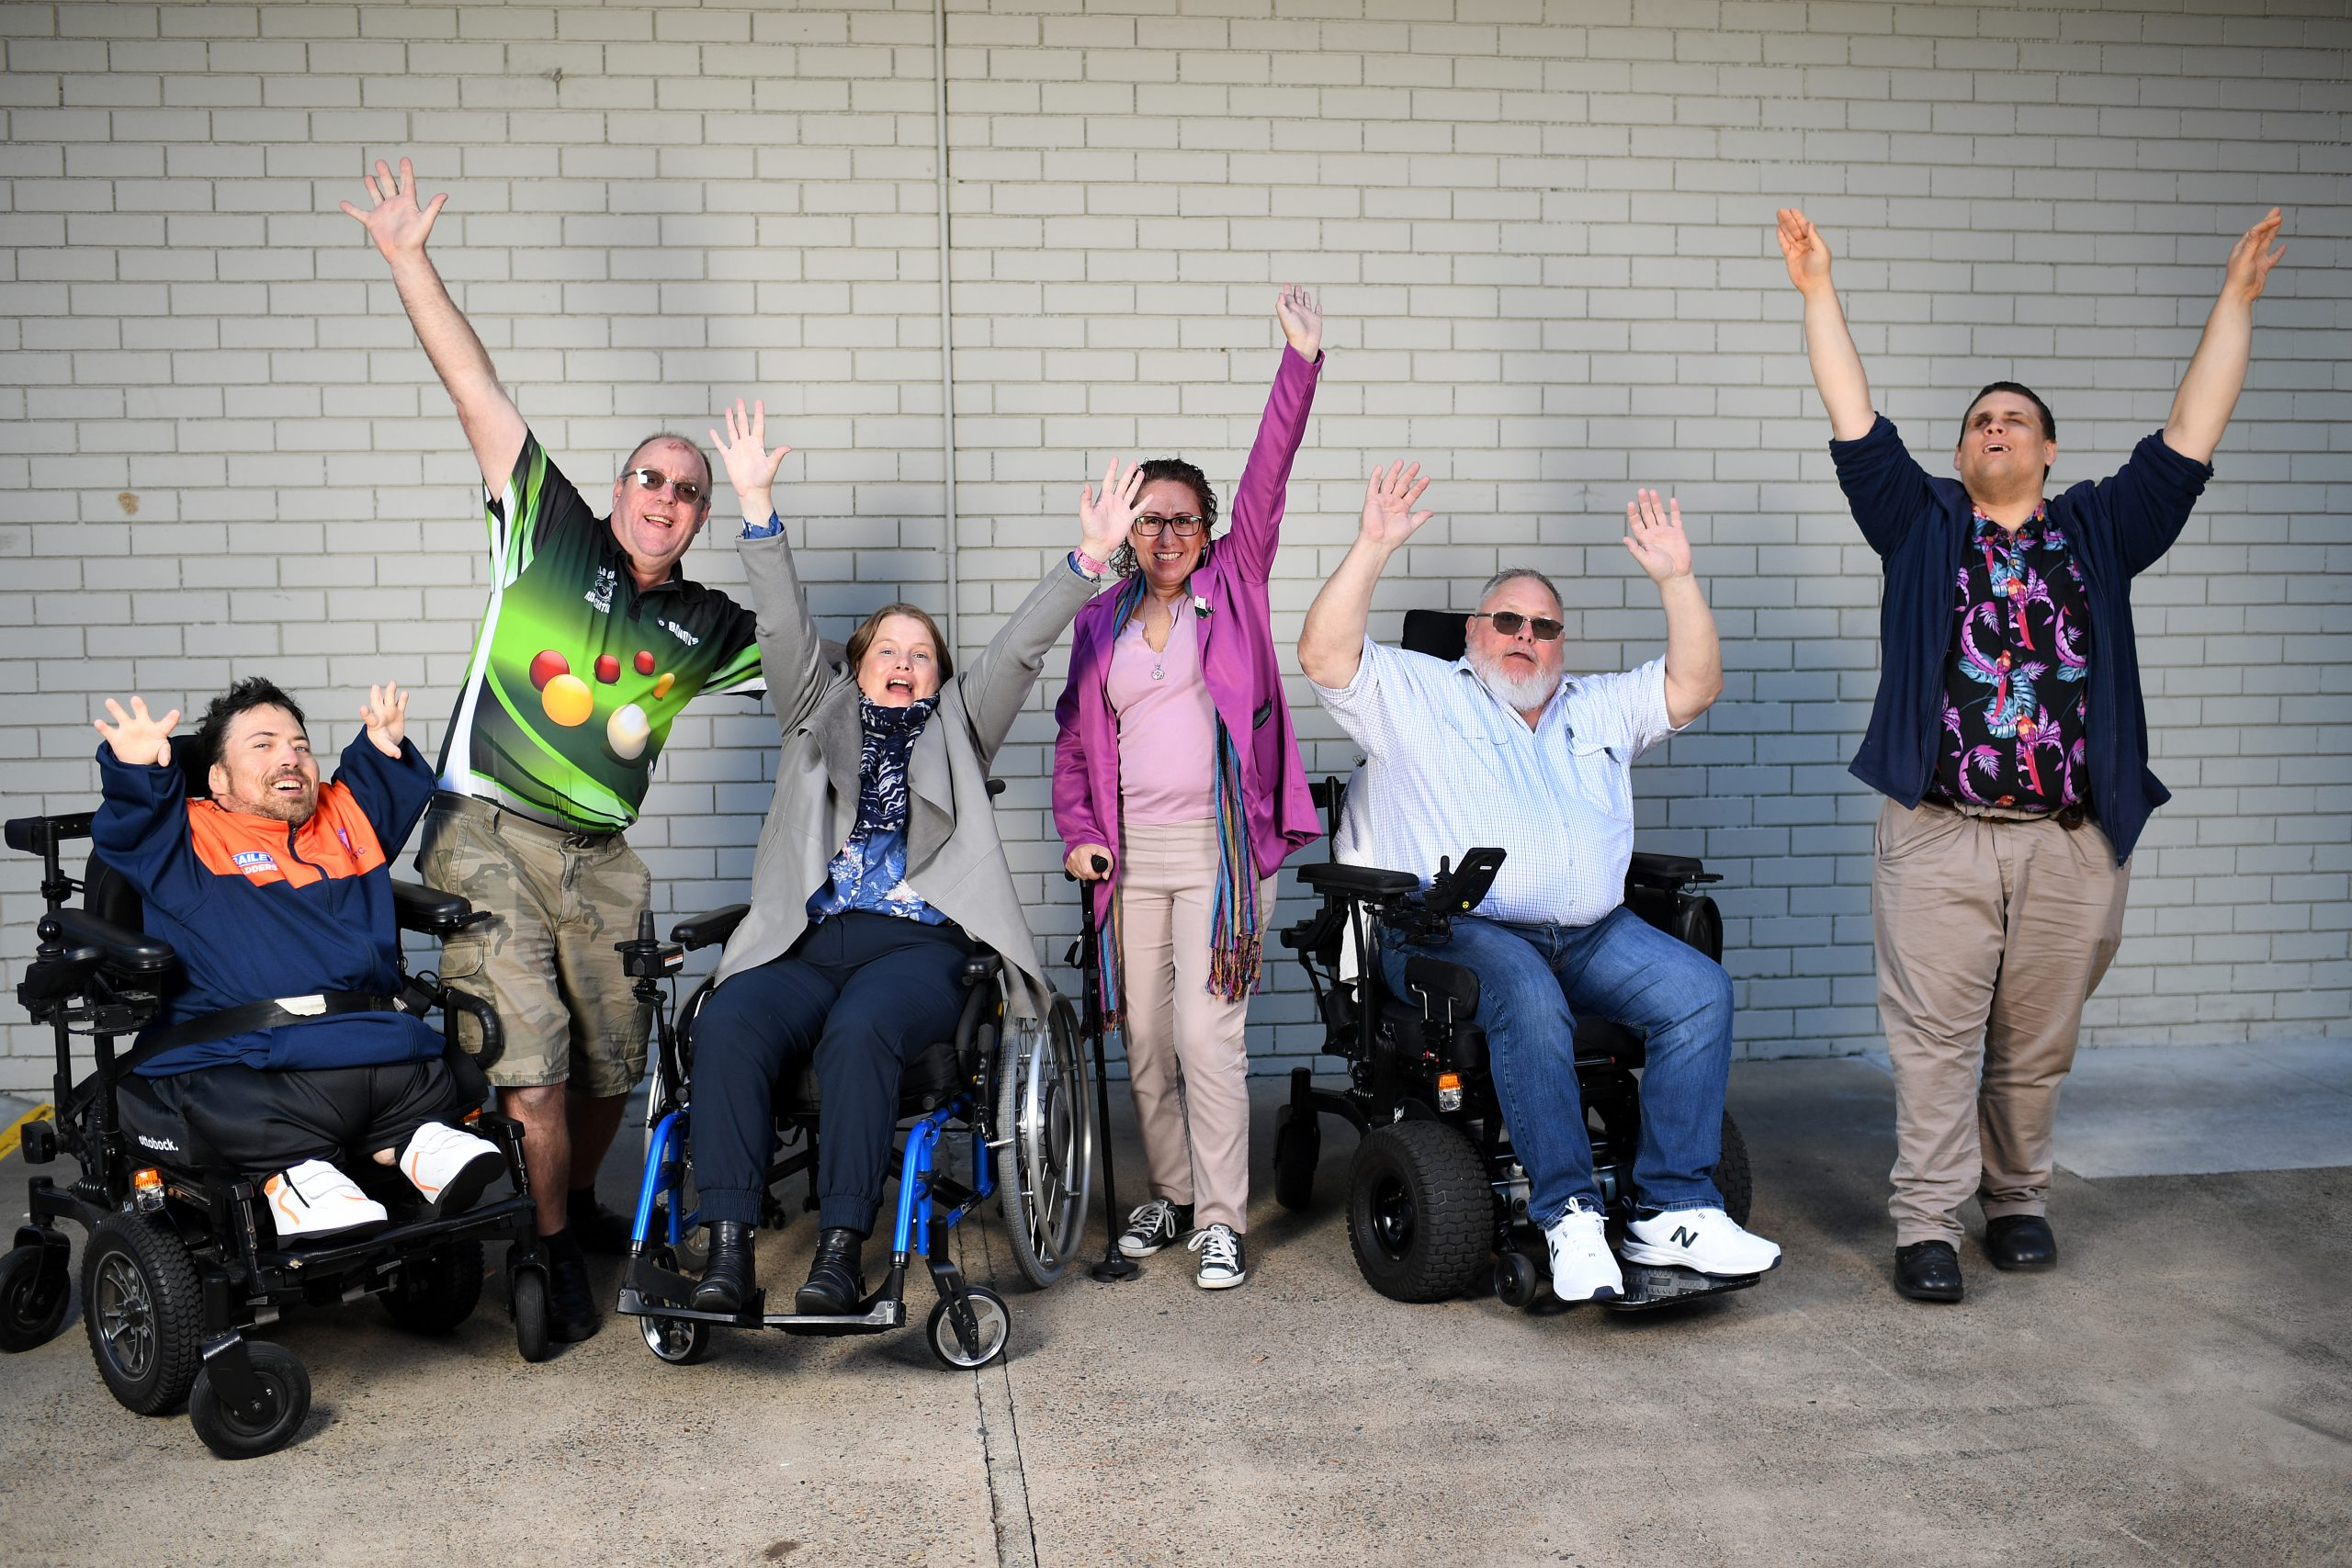 6 people with various disabilities stand in front of a brick wall with upraised arms